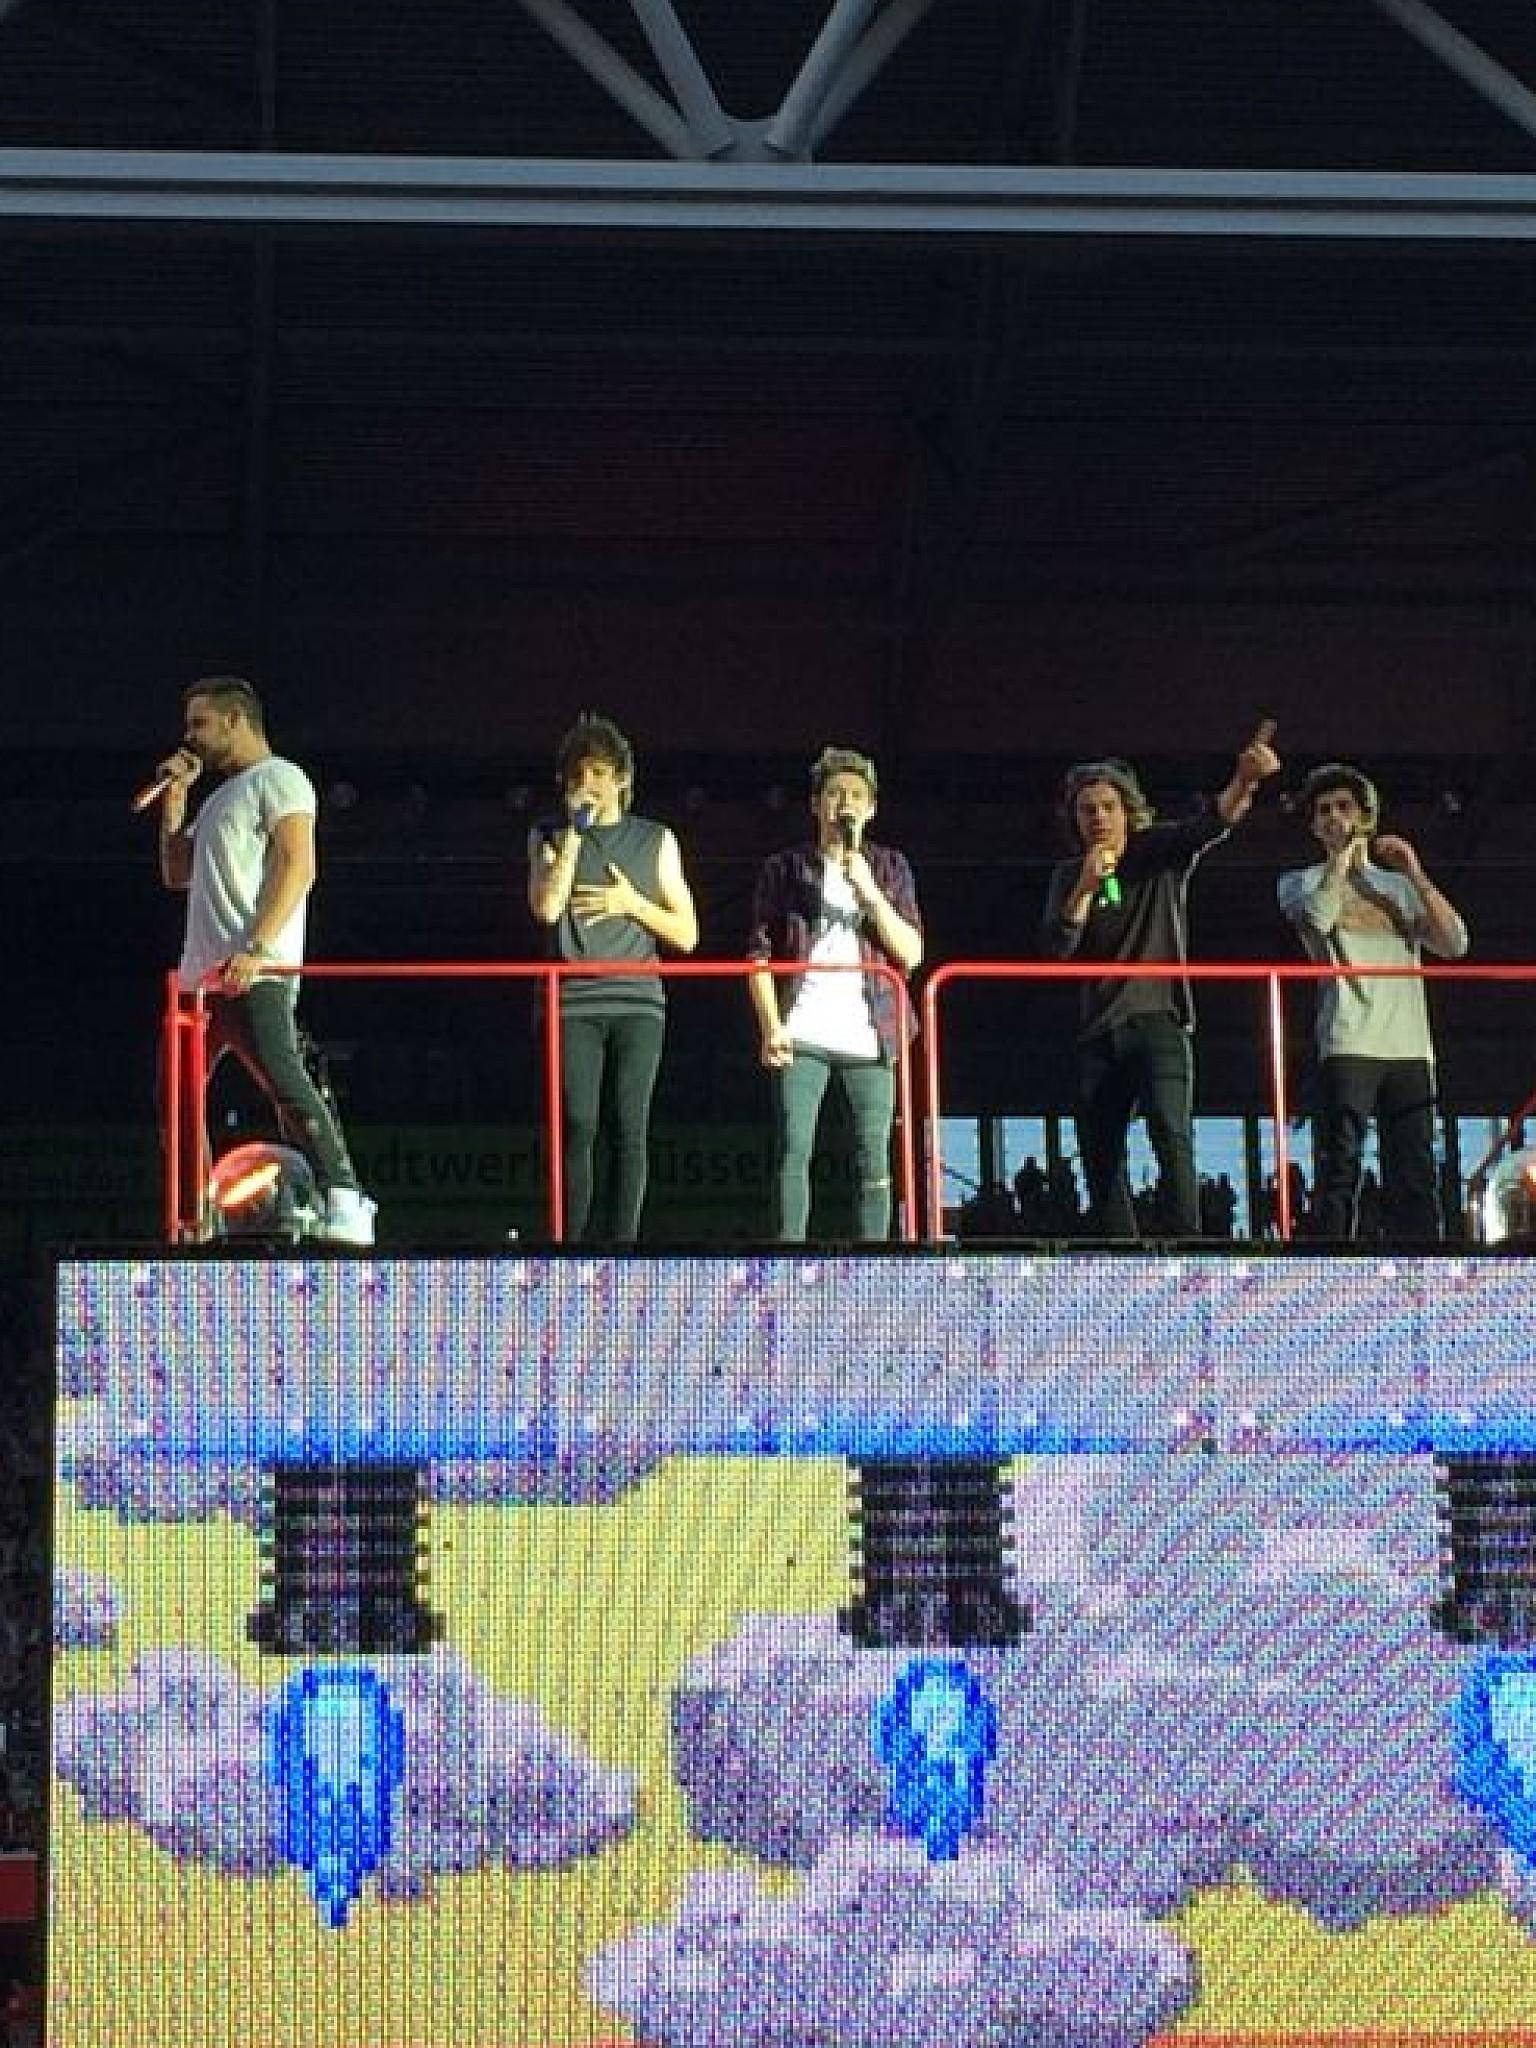 Kreisch-Alarm beim 'One Direction'-Konzert in Düsseldorf